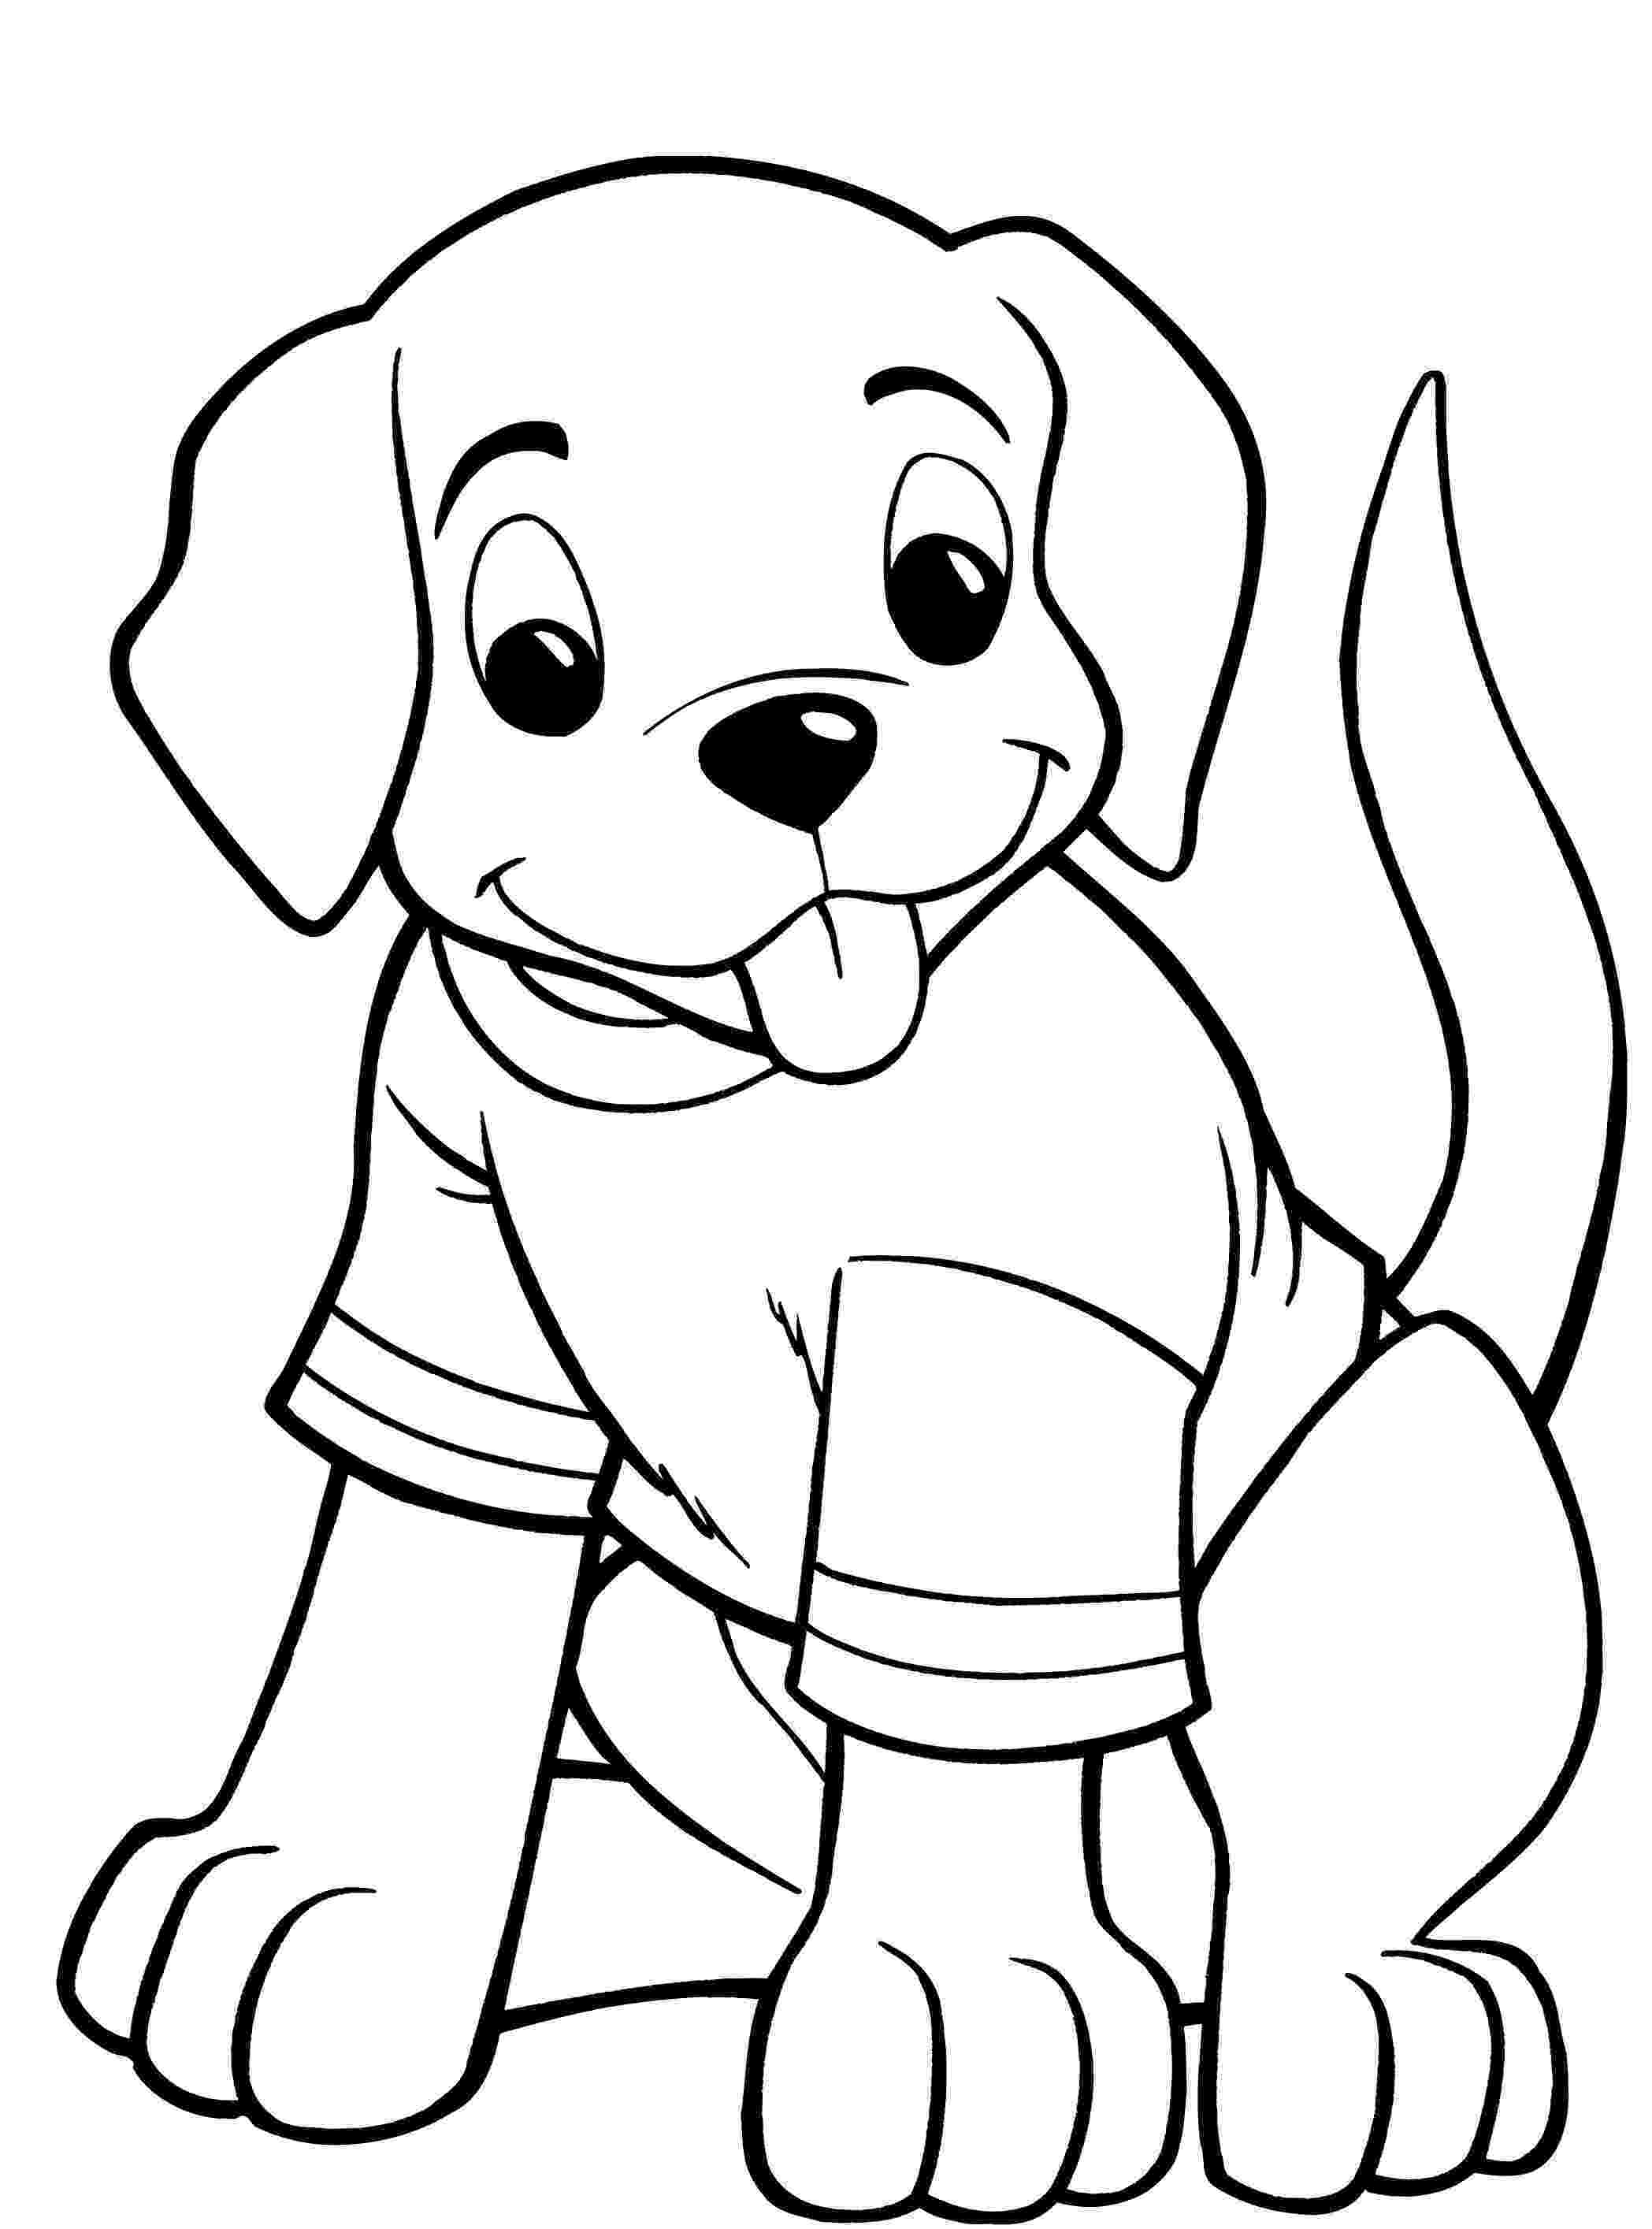 dog colouring pages cute dog coloring pages to download and print for free colouring pages dog